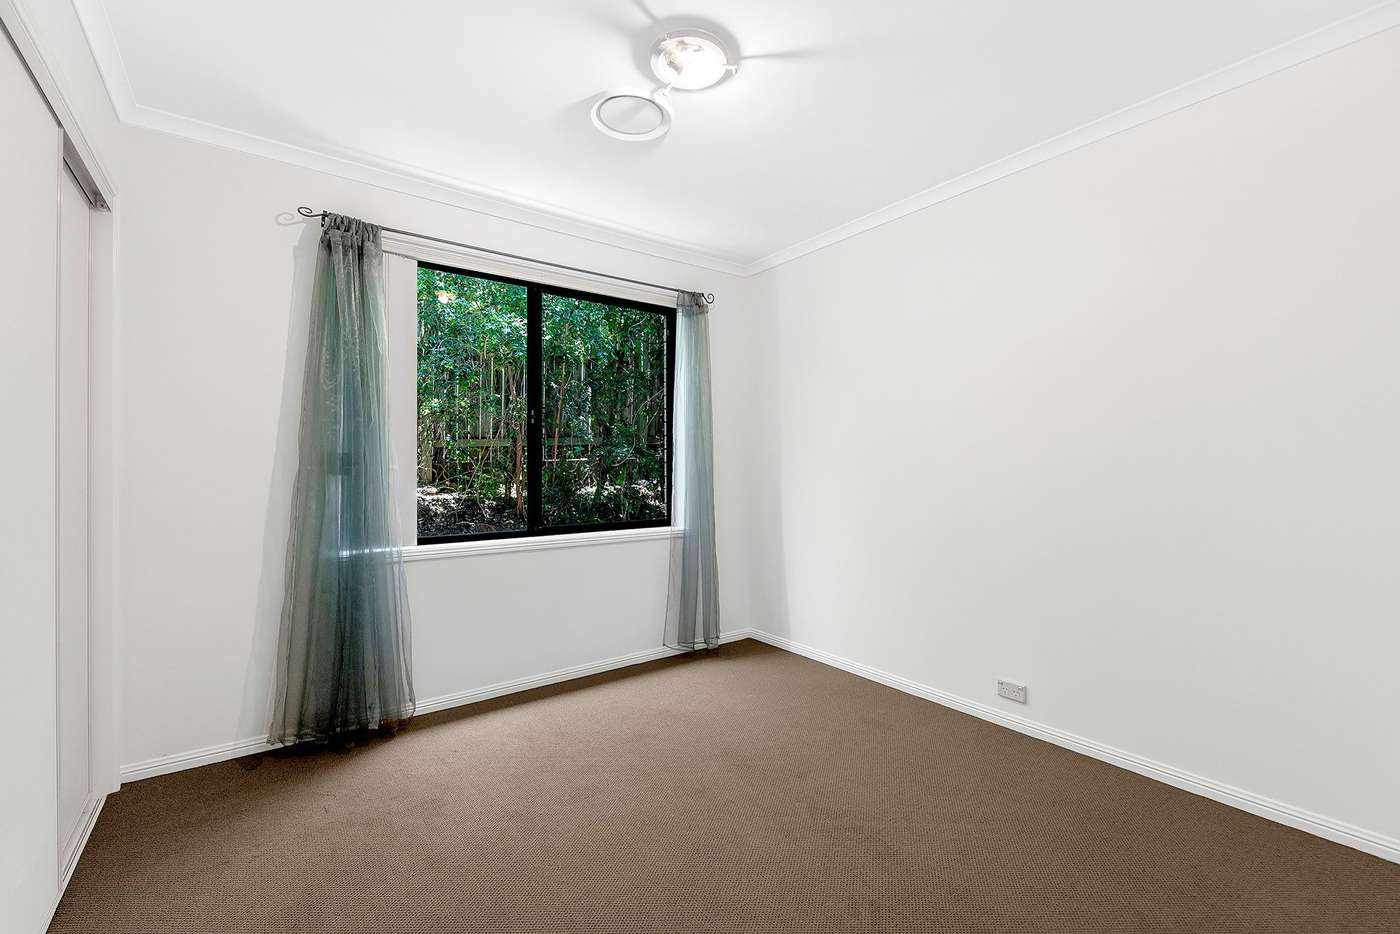 Sixth view of Homely house listing, 36 Huntingdale Crescent, Robina QLD 4226